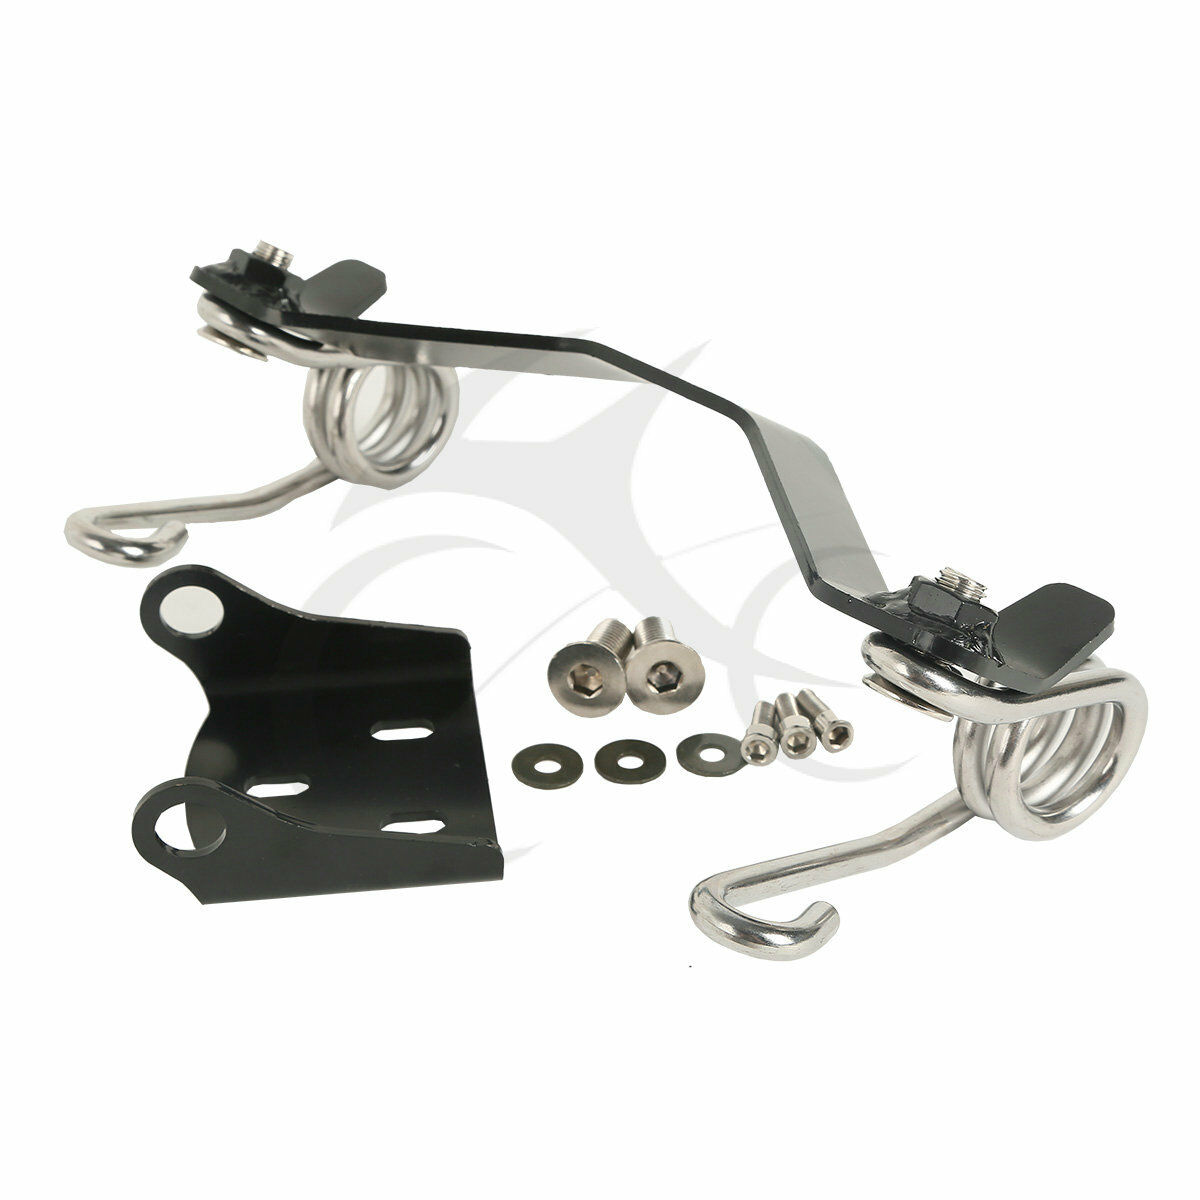 Motorcycle New <font><b>Seat</b></font> Mounting Kit Spring Support Bracket For Harley Sportster 1200 <font><b>883</b></font> 10-16 <font><b>Iron</b></font> 48 image